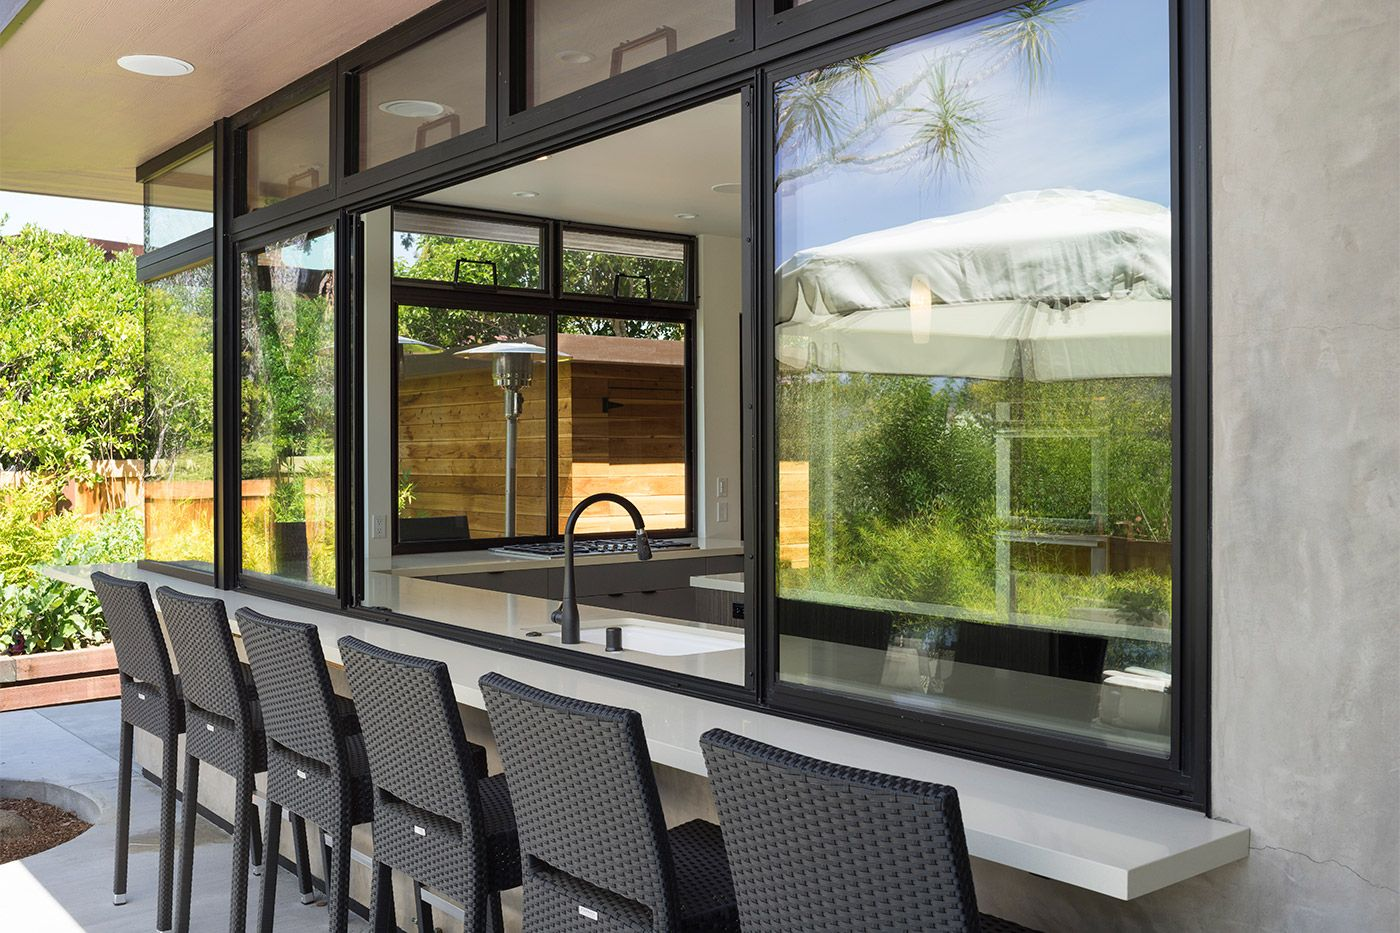 Custom modern design outdoor/indoor kitchen in this home design, architecture and construction near Stanford University